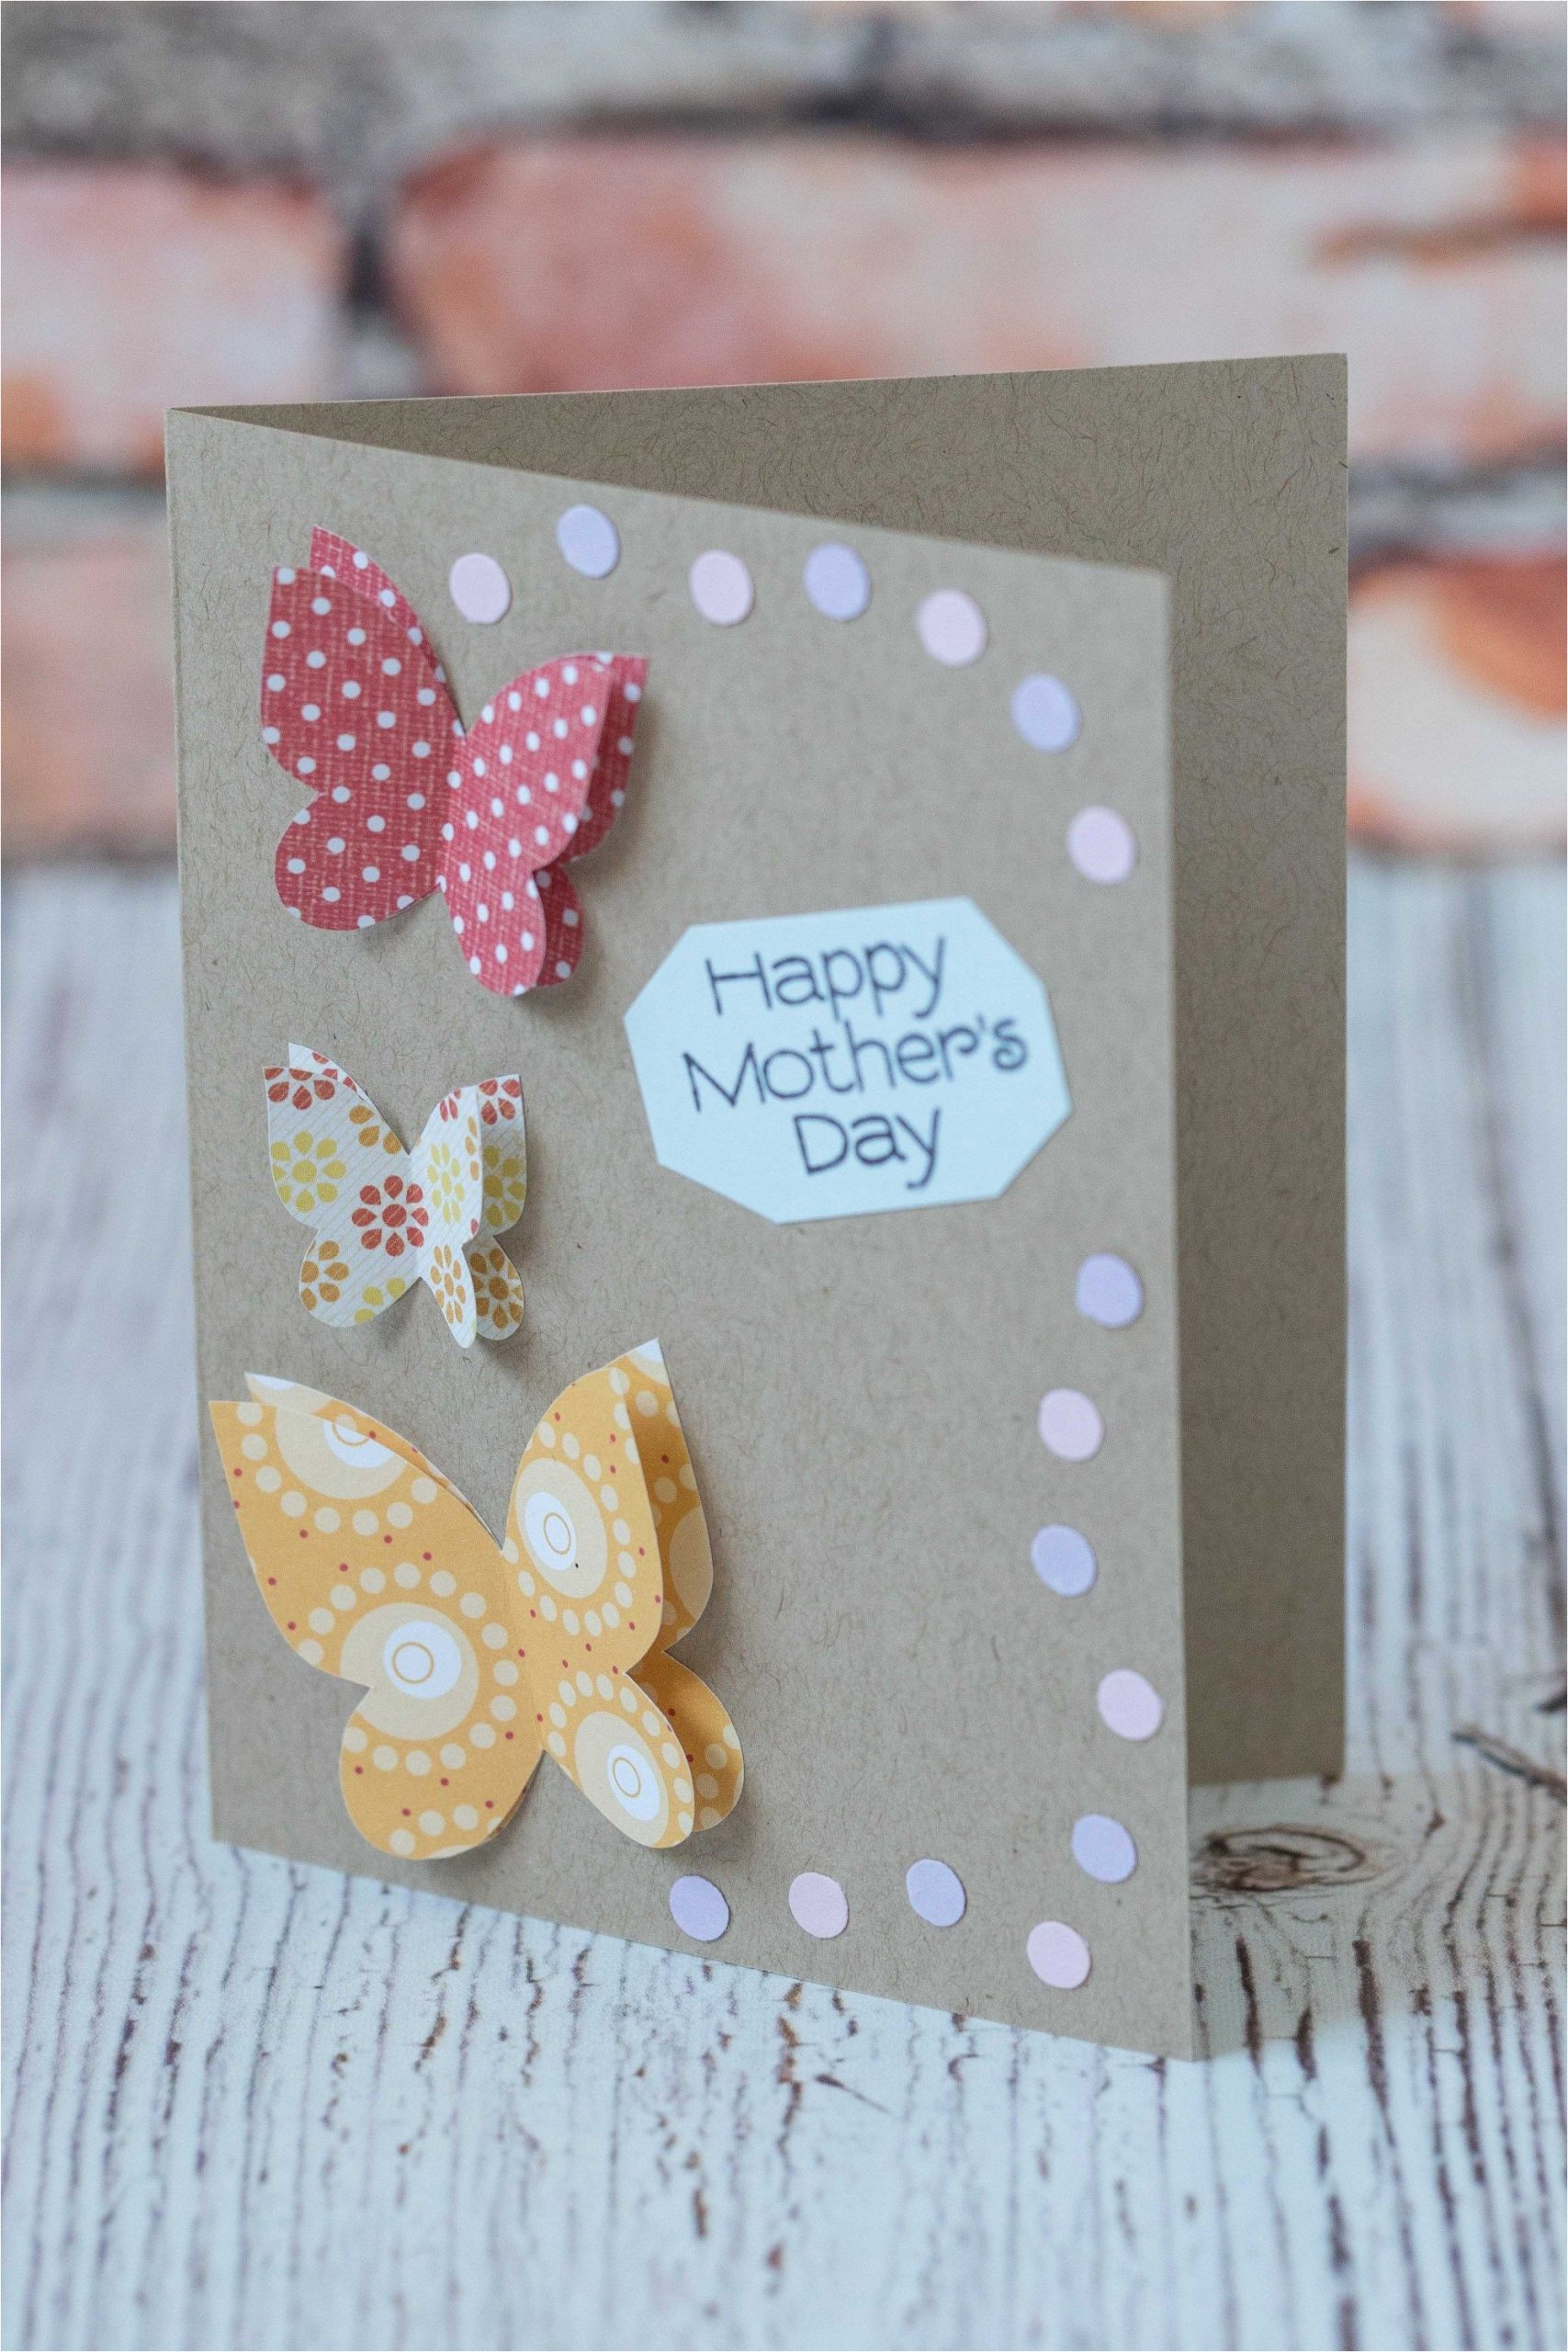 Happy Mothers Day Diy Card 10 Simple Diy Mother S Day Cards